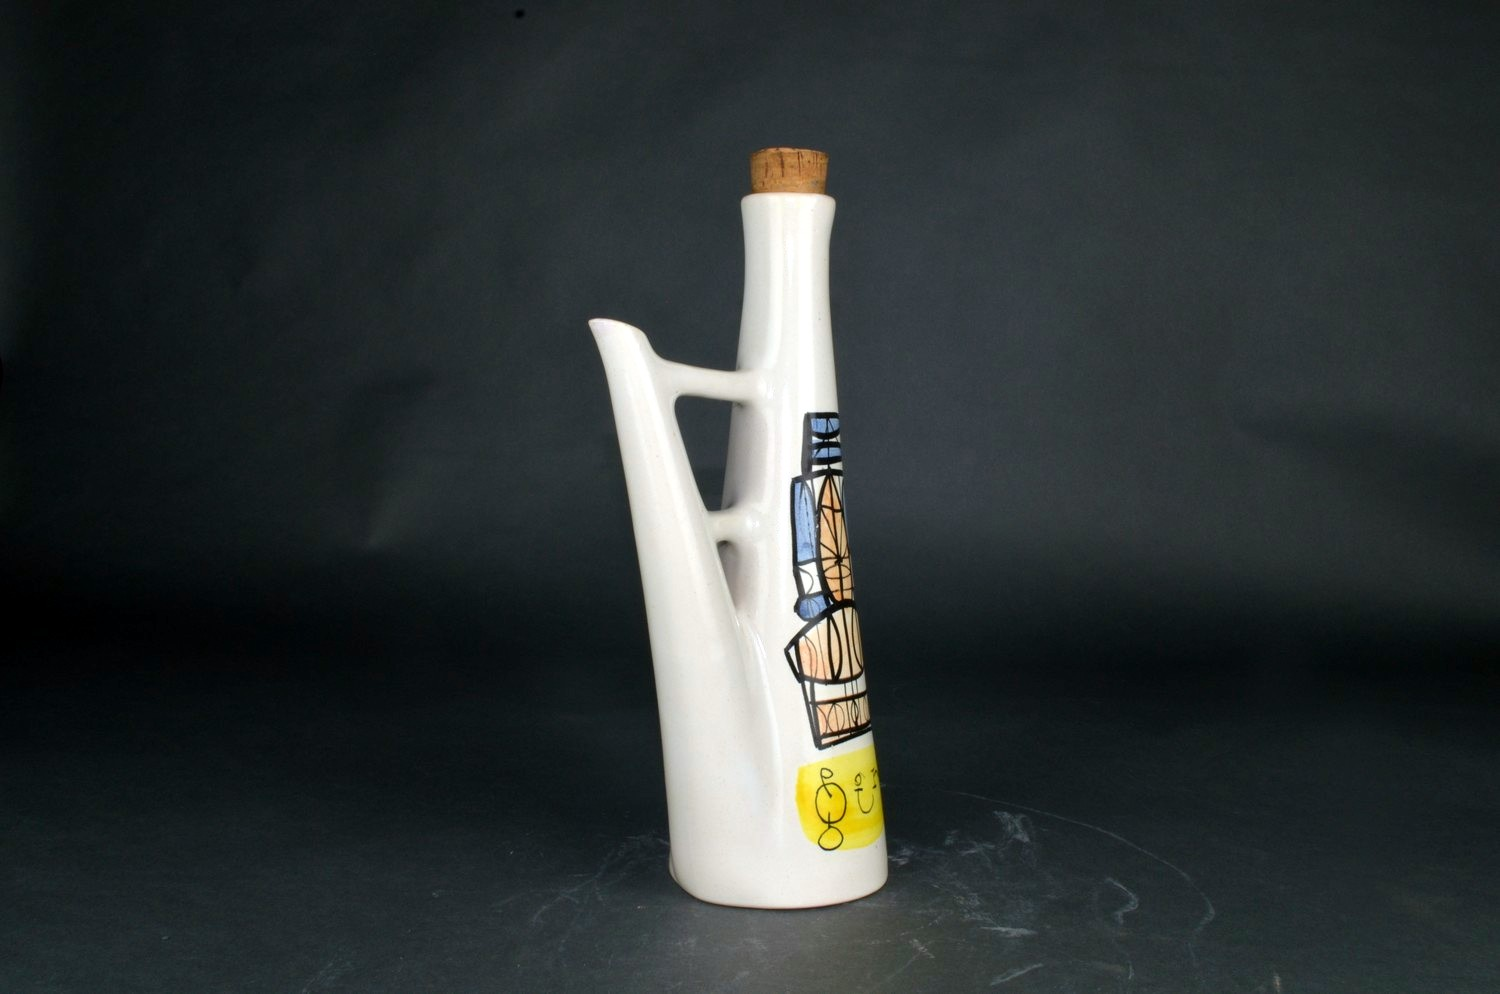 Ceramic Flask 'gin' By Roger Capron 2